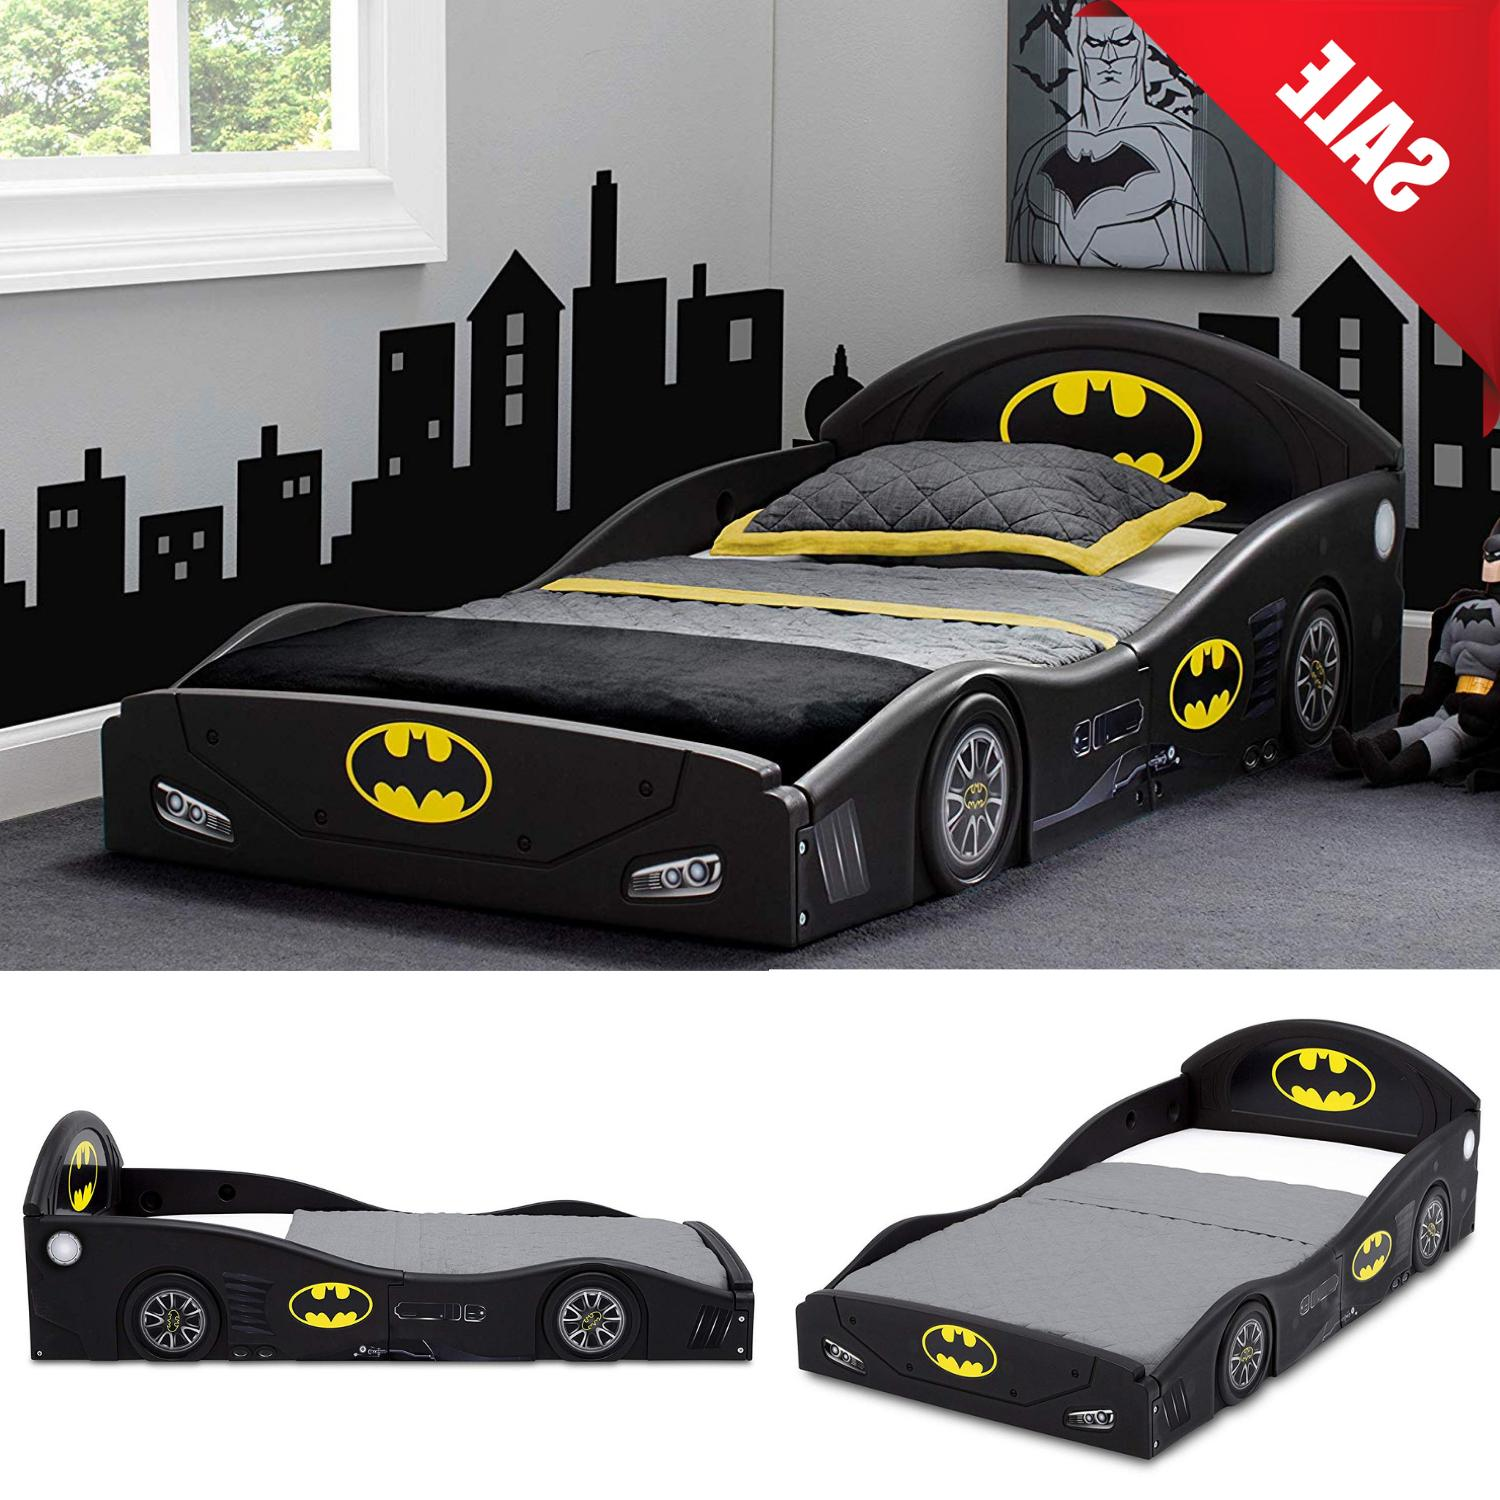 Childs Bed Frame Kids Bedroom Furniture Boys Batmobile Car W